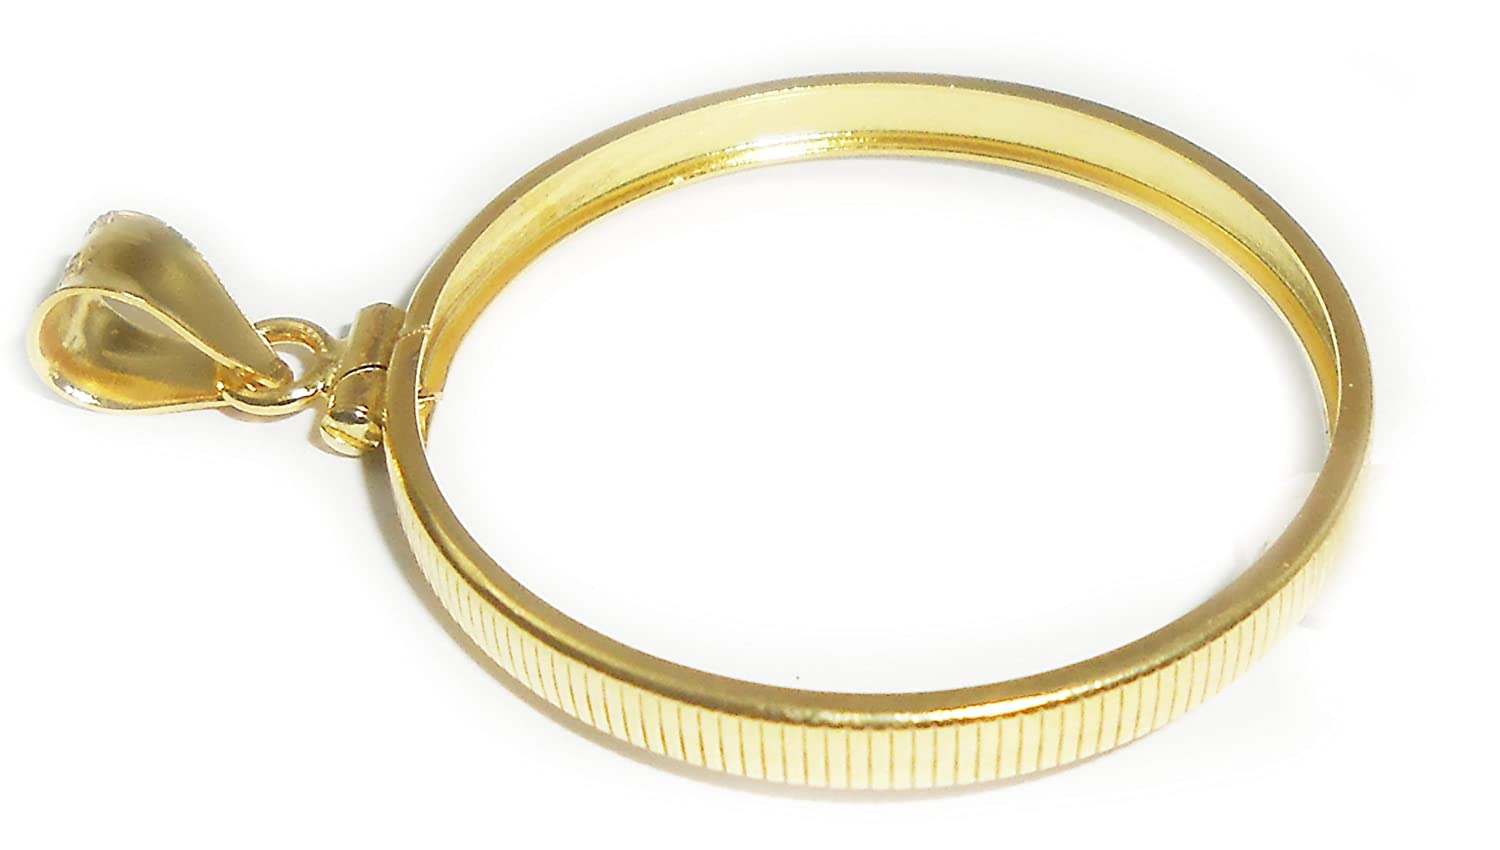 14k Gold Filled 1 oz Philharmonic Coin Edge Coin Bezel Frame Mount 37mm x 2mm